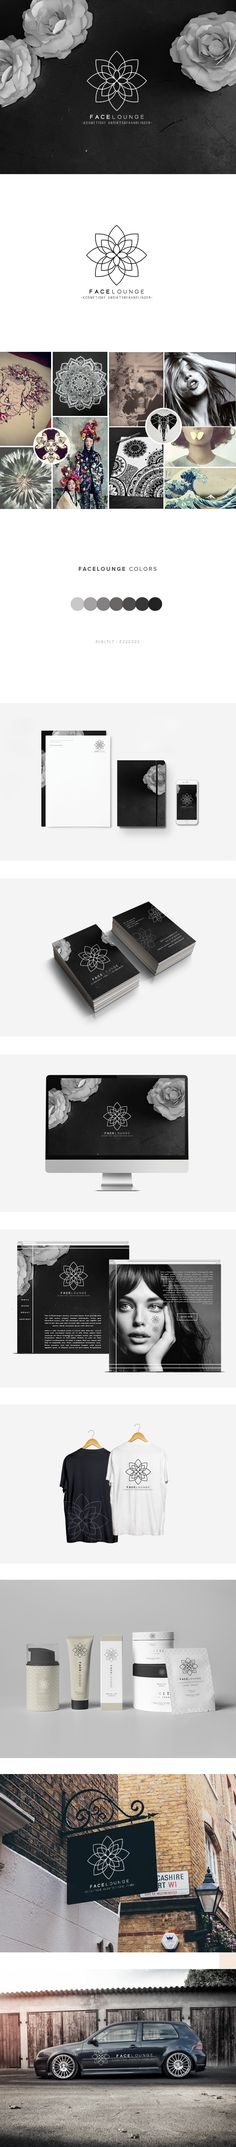 FaceLounge Branding on Behance                                                                                                                                                                                 More http://jrstudioweb.com/diseno-grafico/diseno-de-logotipos/